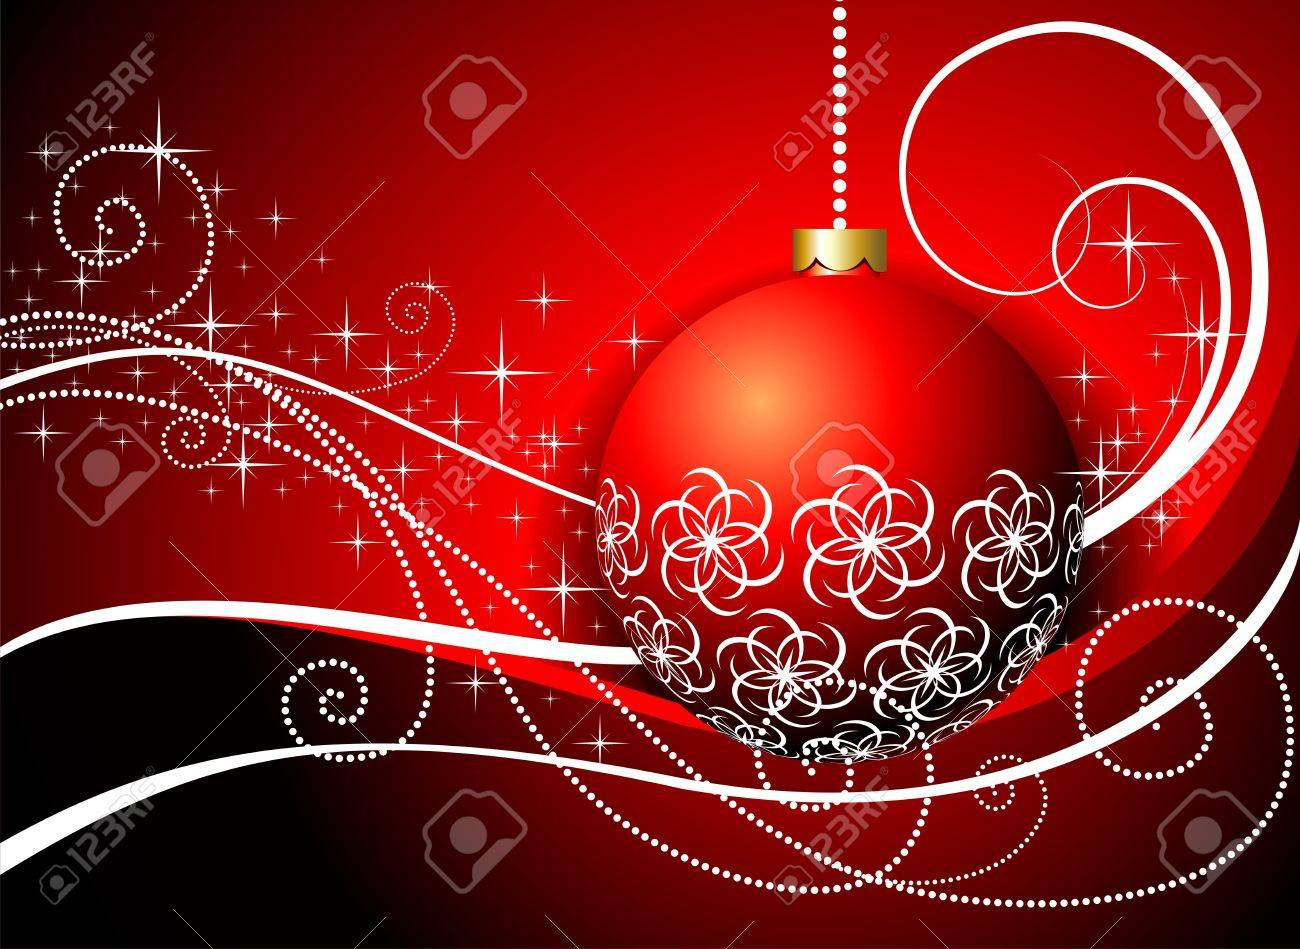 Red glass ball ornaments - Vector Christmas Card With Red Glass Ball And Ornament Motive